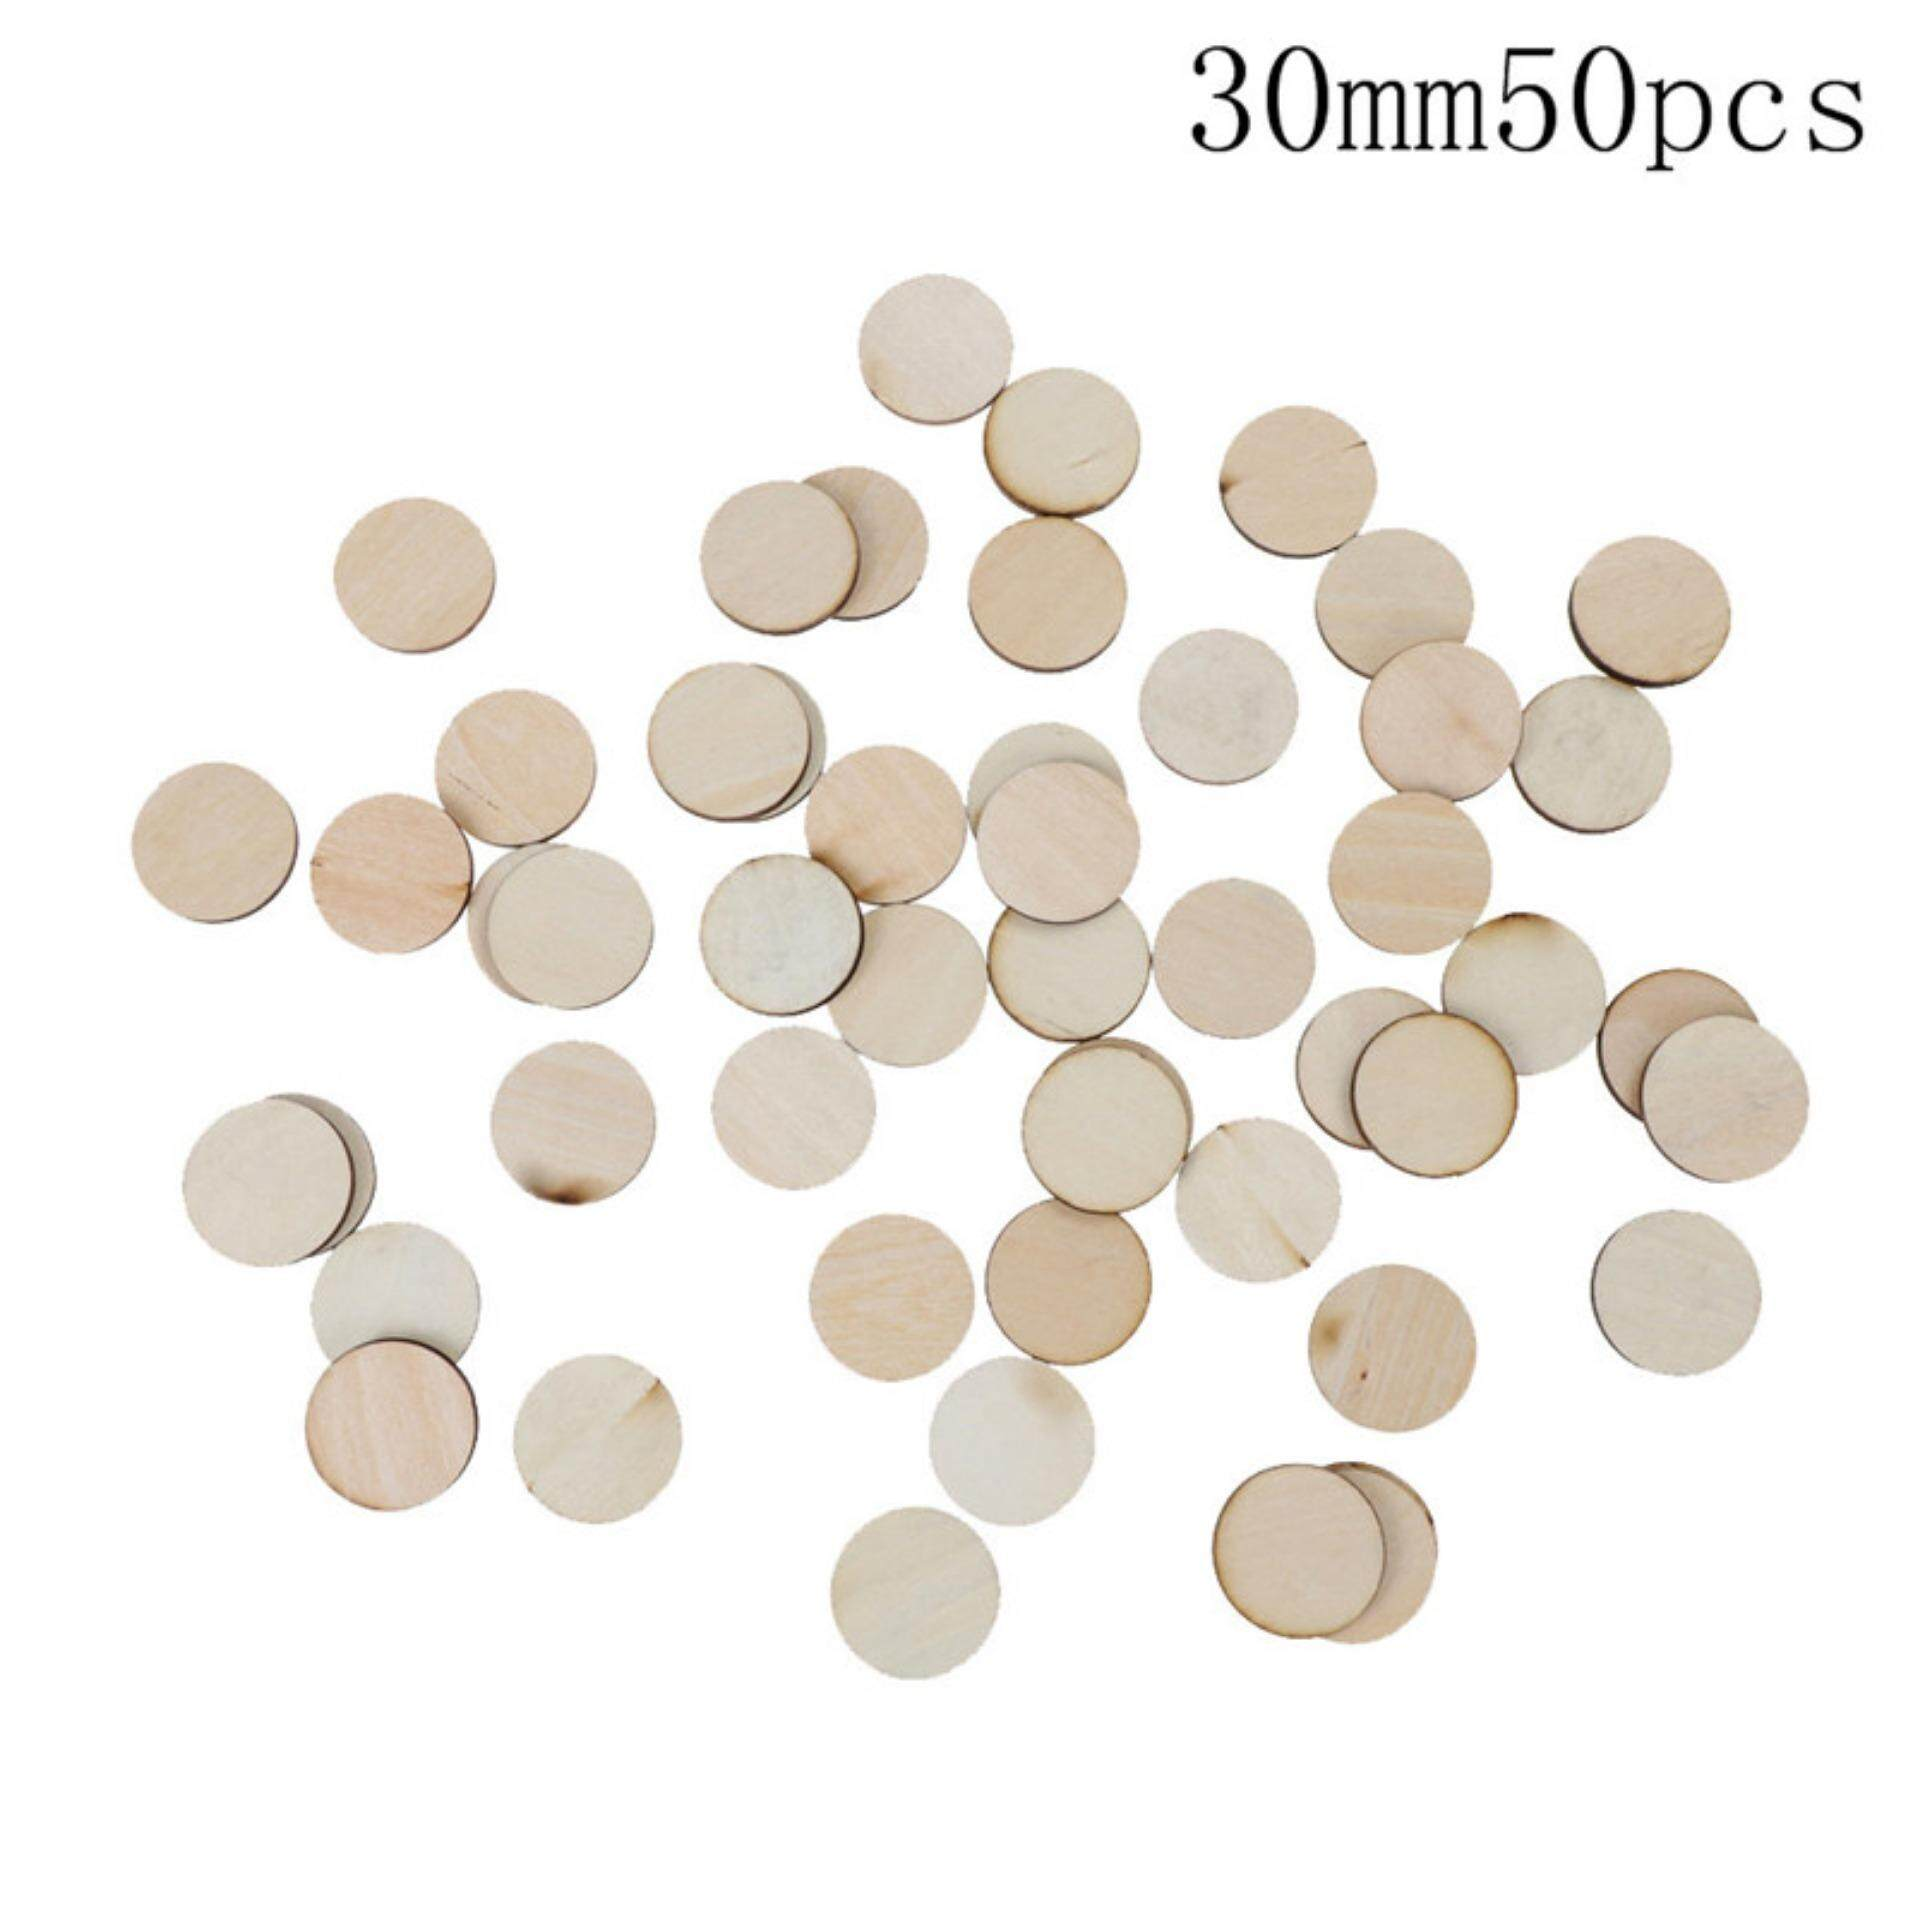 Unfinished Wooden Round Discs Embellishments DIY Rustic Art Crafts  3mm